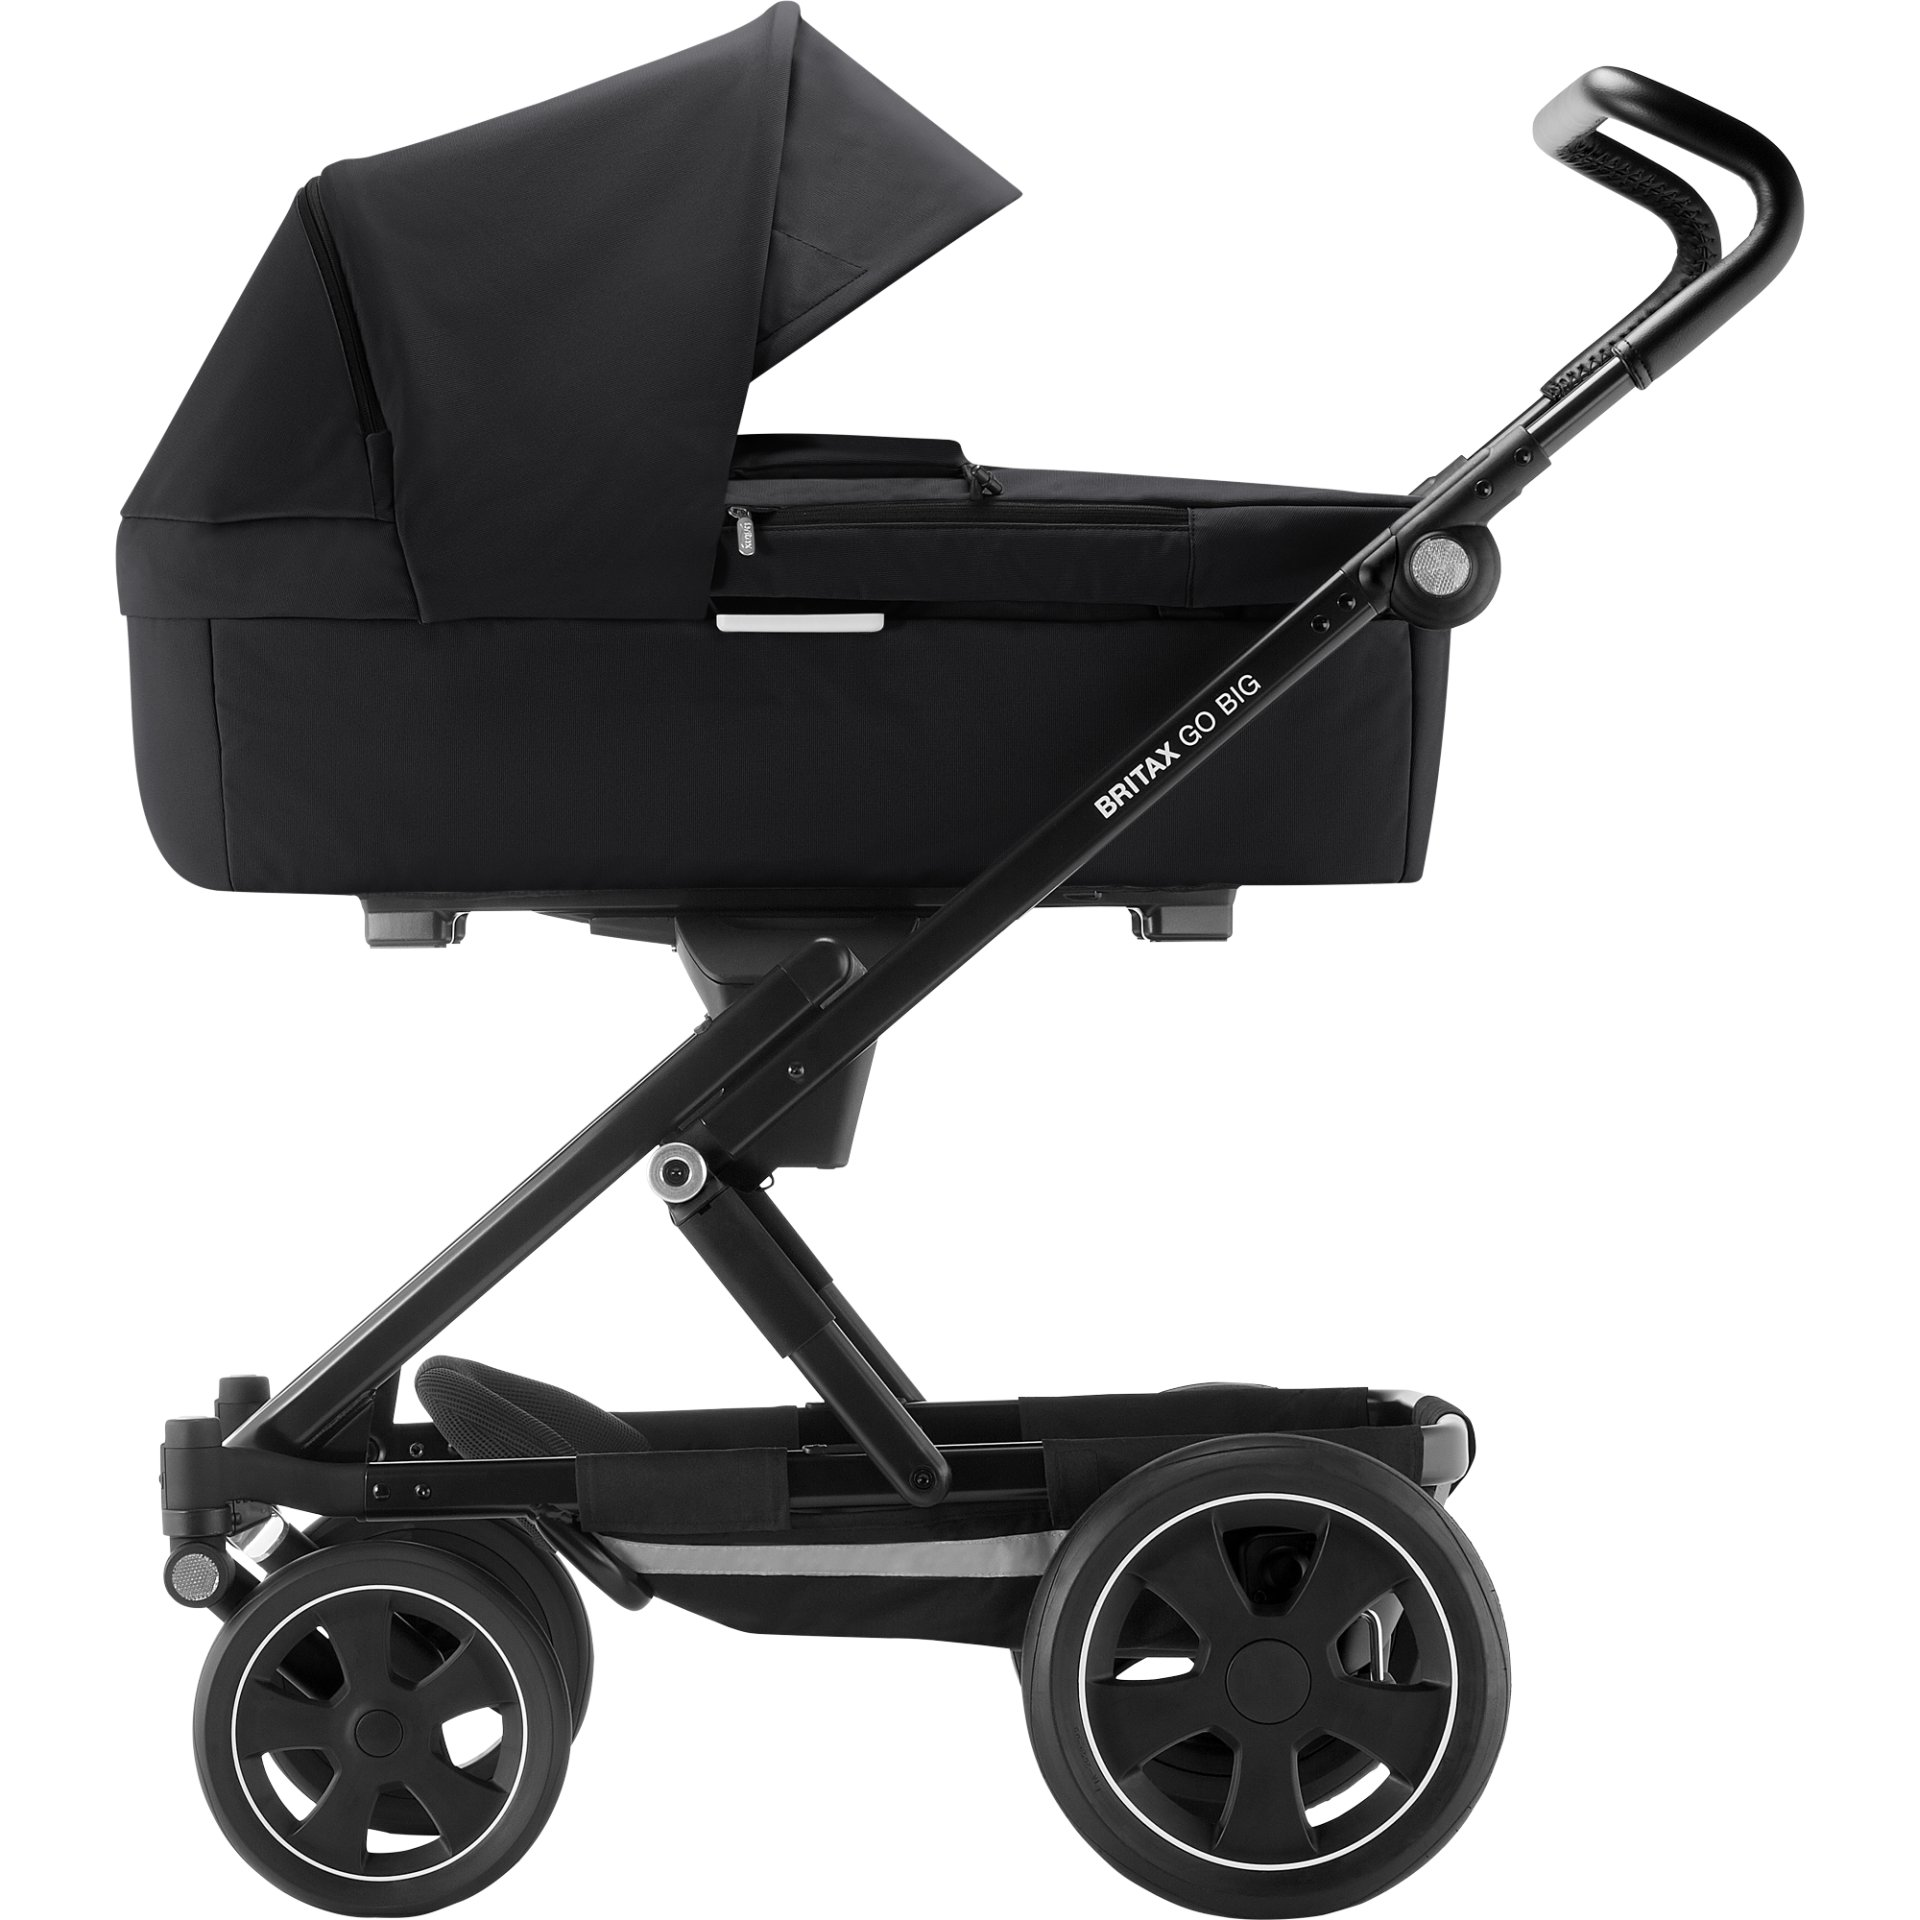 britax r mer go kinderwagen aufsatz prambody 2018 cosmos black online kaufen bei kidsroom. Black Bedroom Furniture Sets. Home Design Ideas